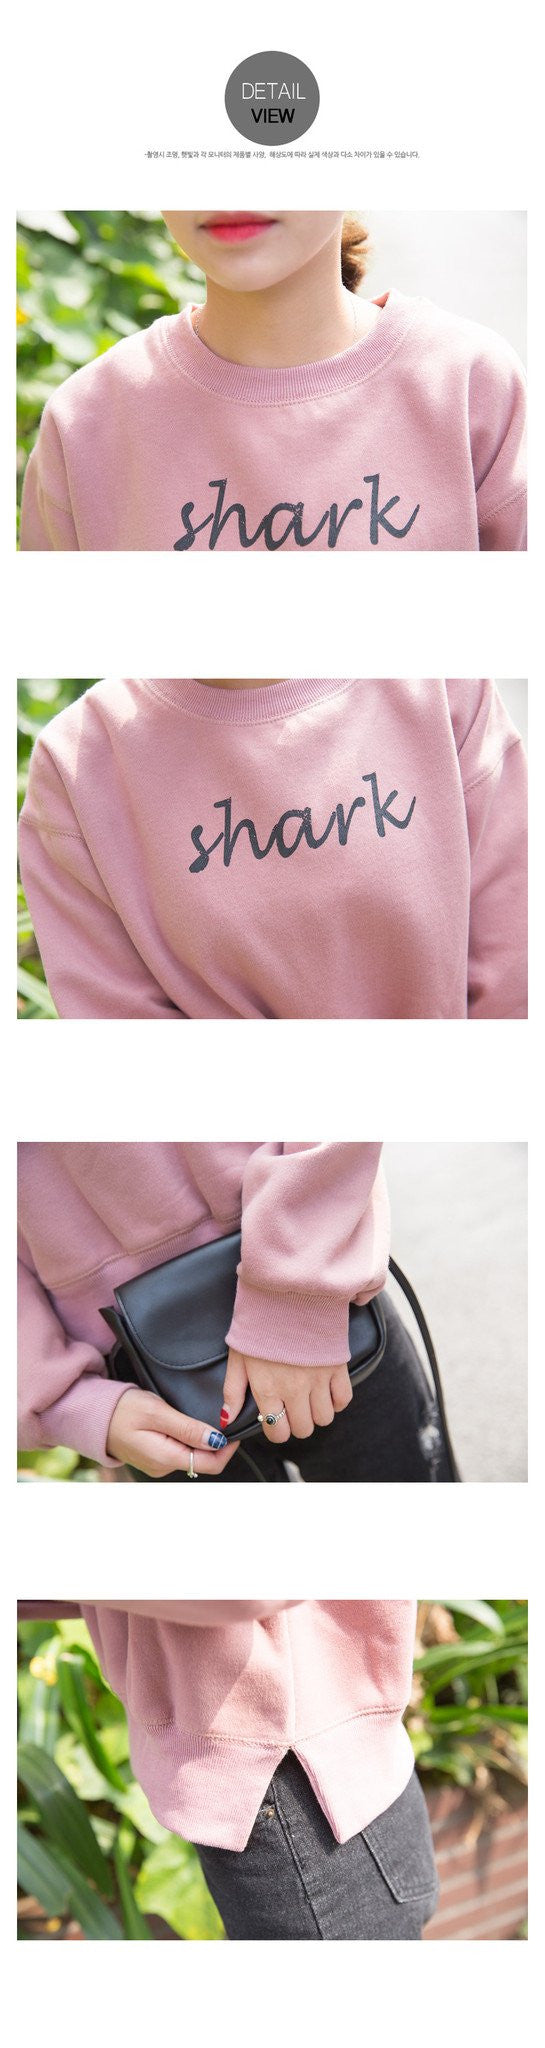 Shark Printed Casual Sweatshirts